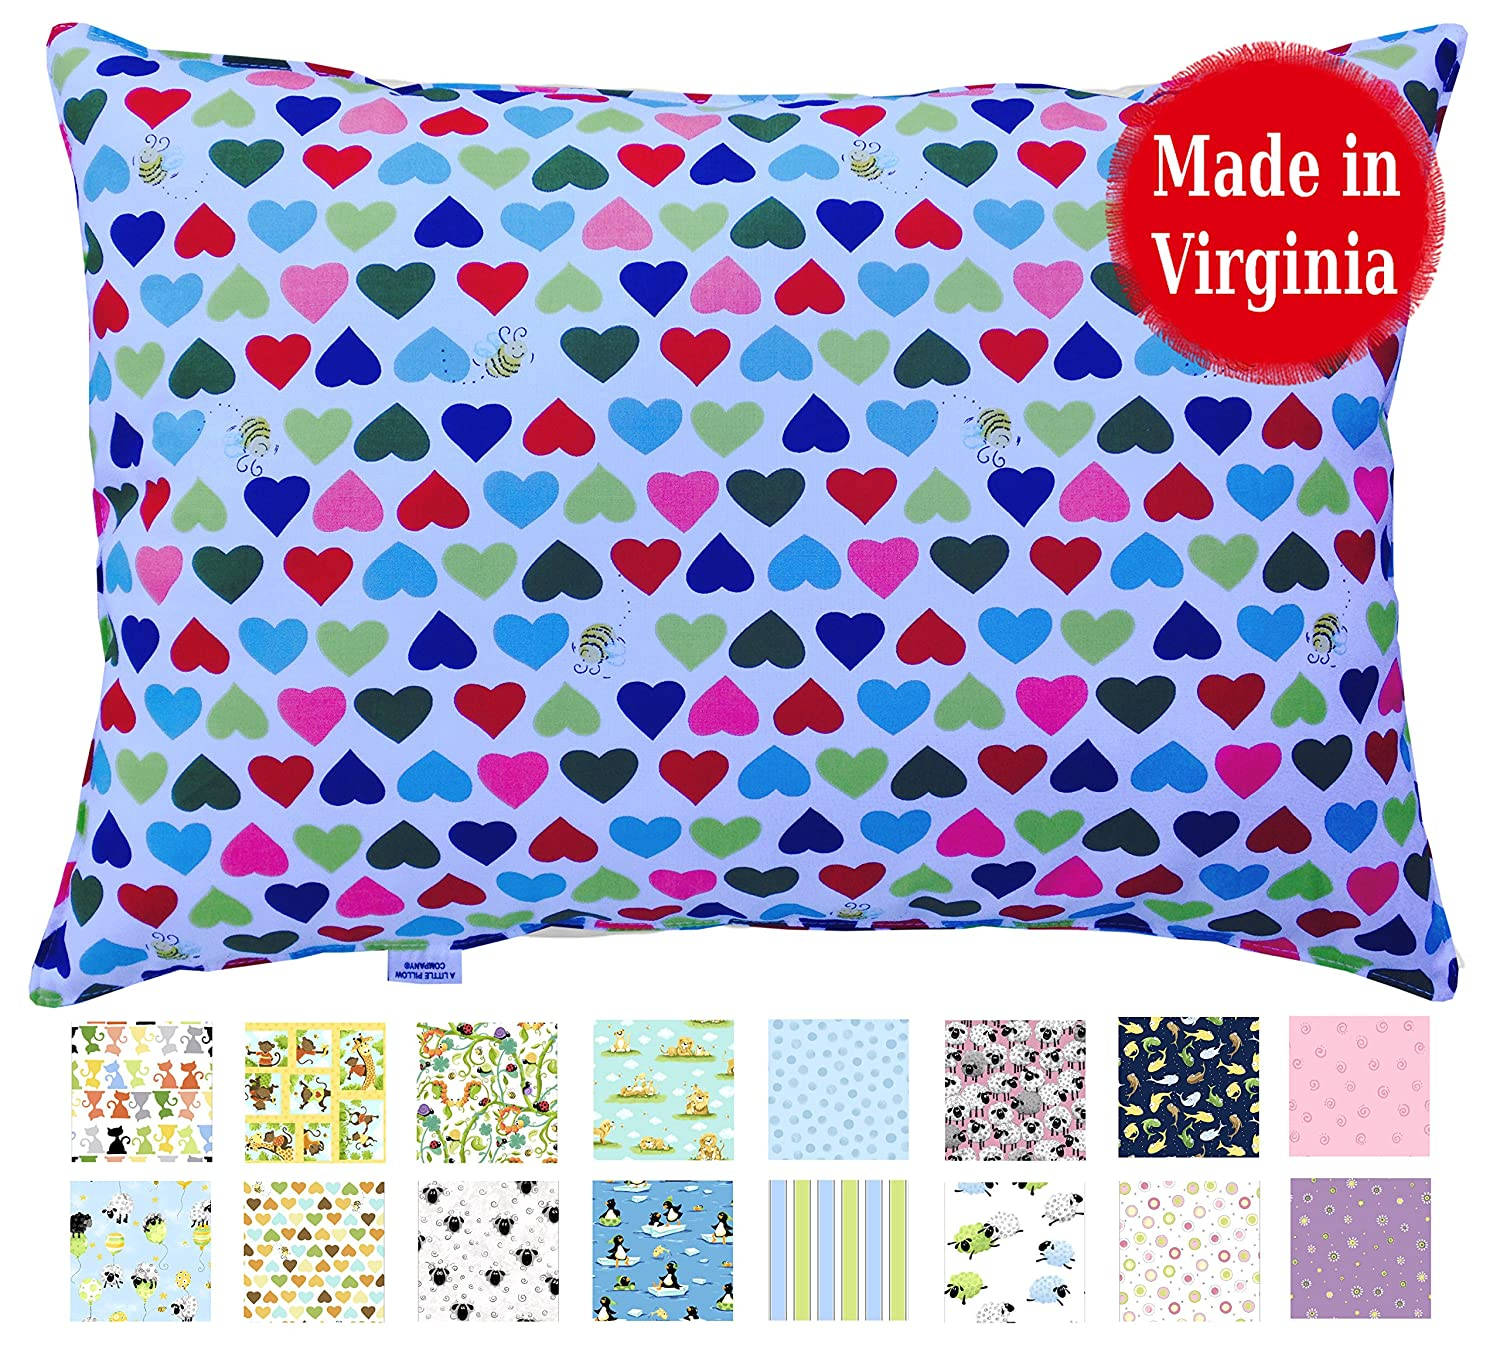 Toddler Pillow (Counting Sheep) - 13 x 18 - Hypoallergenic - Machine Washable - Double Stitched for Extra Strength - Made in Virginia by A Little Pillow Company TP-CNTSH